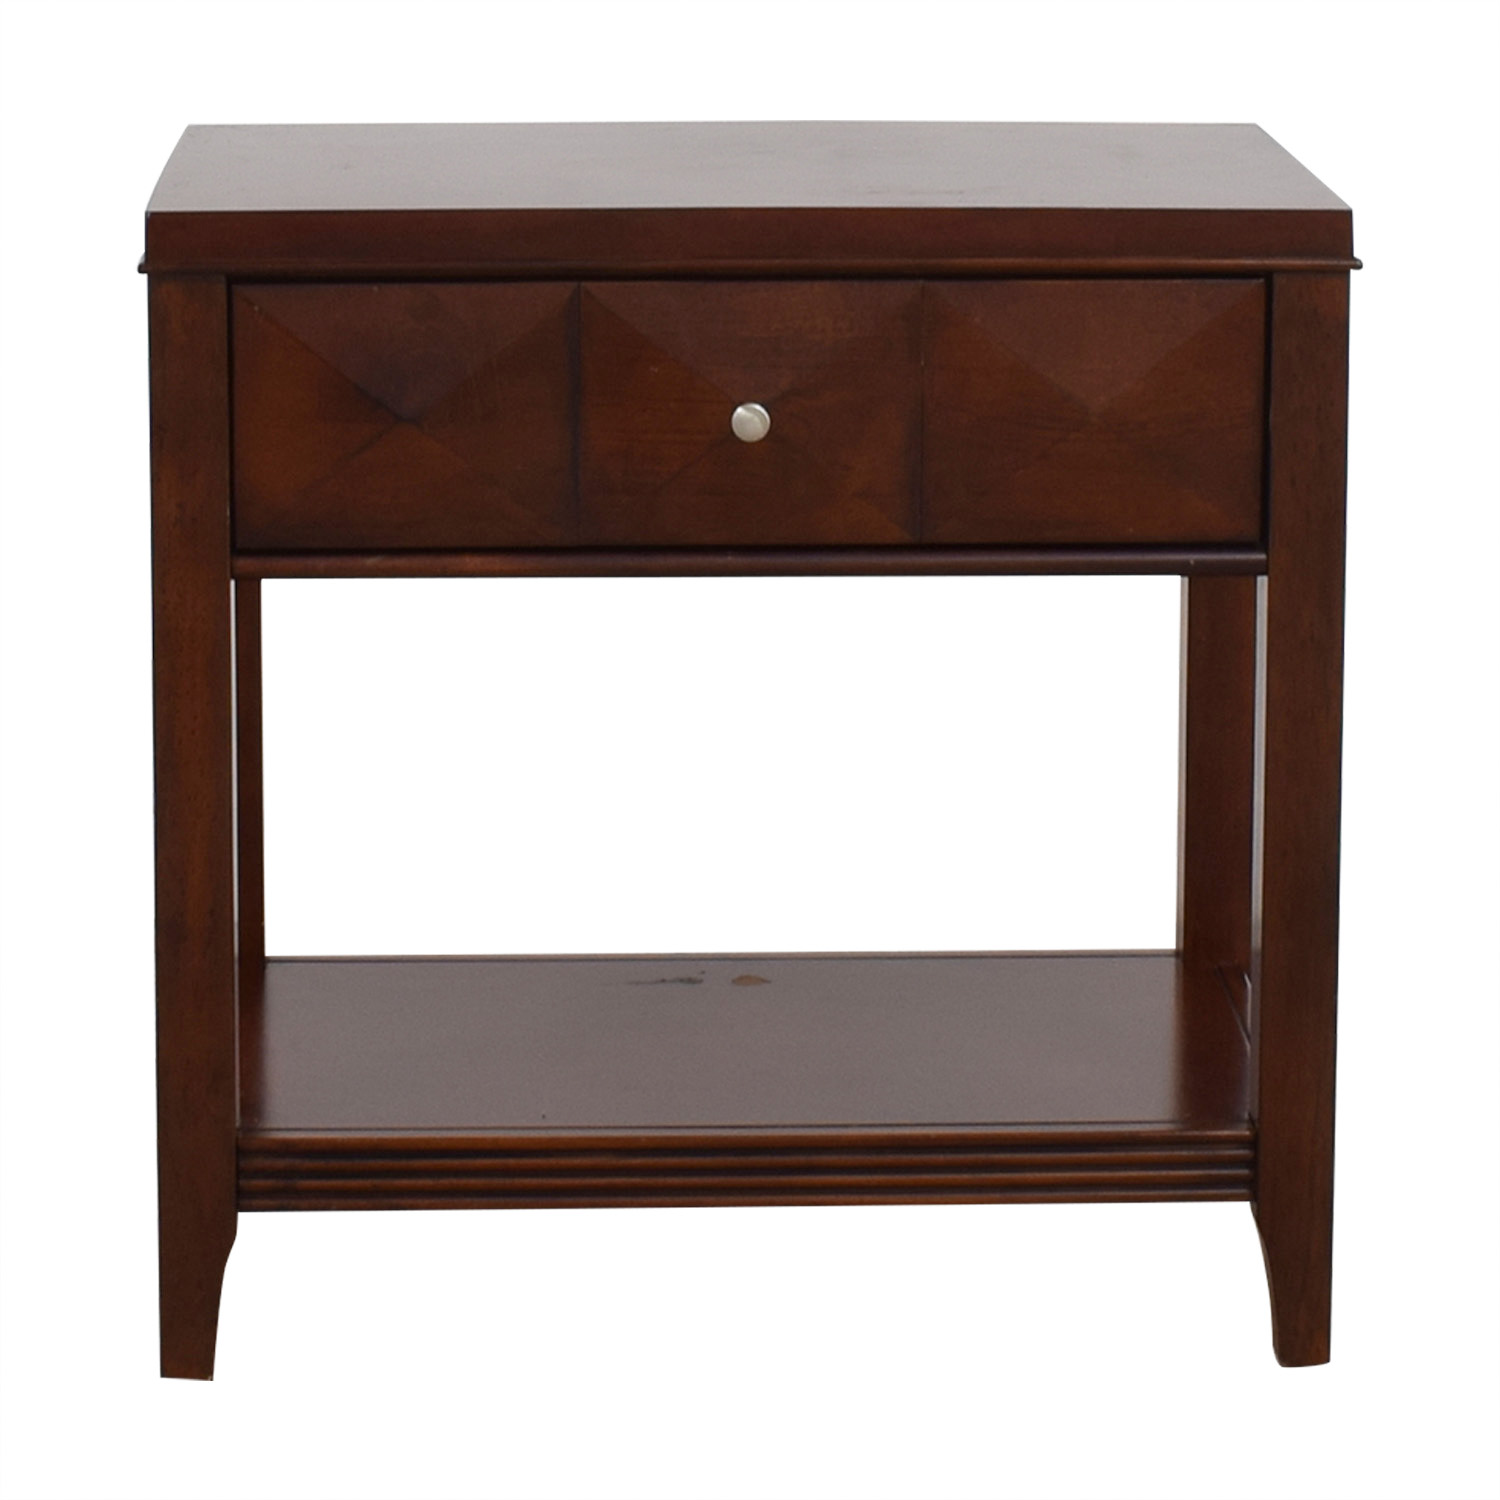 Raymour & Flanigan Shadow Expresso Single Drawer Nightstand / Tables